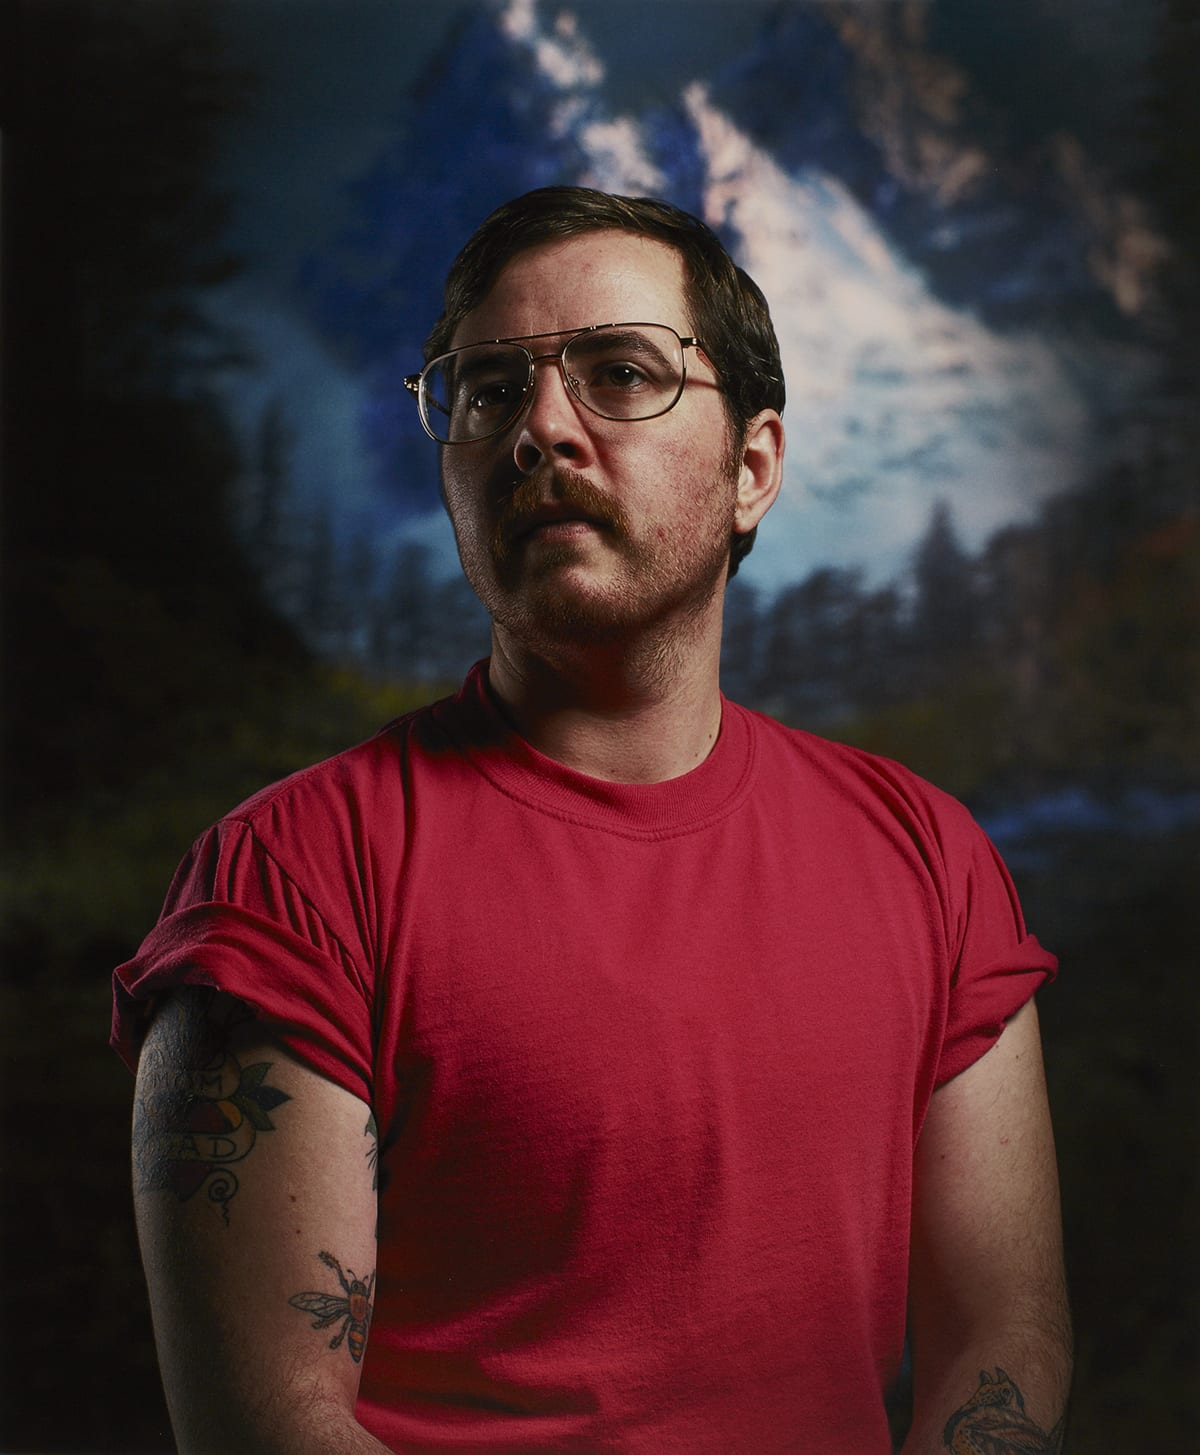 "A vertical rectangular portrait of a masculine-presenting individual shown from the midsection up. The figure is positioned to face the viewer or artist and their head is turned to the left. They have light skin, dark short hair, a mustache, and beard stubble. They wear metal aviator-style eyeglasses and a red short-sleeved t-shirt with the sleeves rolled up. The figure's bare arms show several tattoos. The upper arm at left has the words ""MOM"" and ""DAD"" within a heart design and another is of an insect. On the figure's forearm at right, part of a bird tattoo is visible. The background is slightly out of focus and depicts large, jagged, snow-covered mountain peaks in blues and whites. Below the mountains are pine trees and dark foliage."